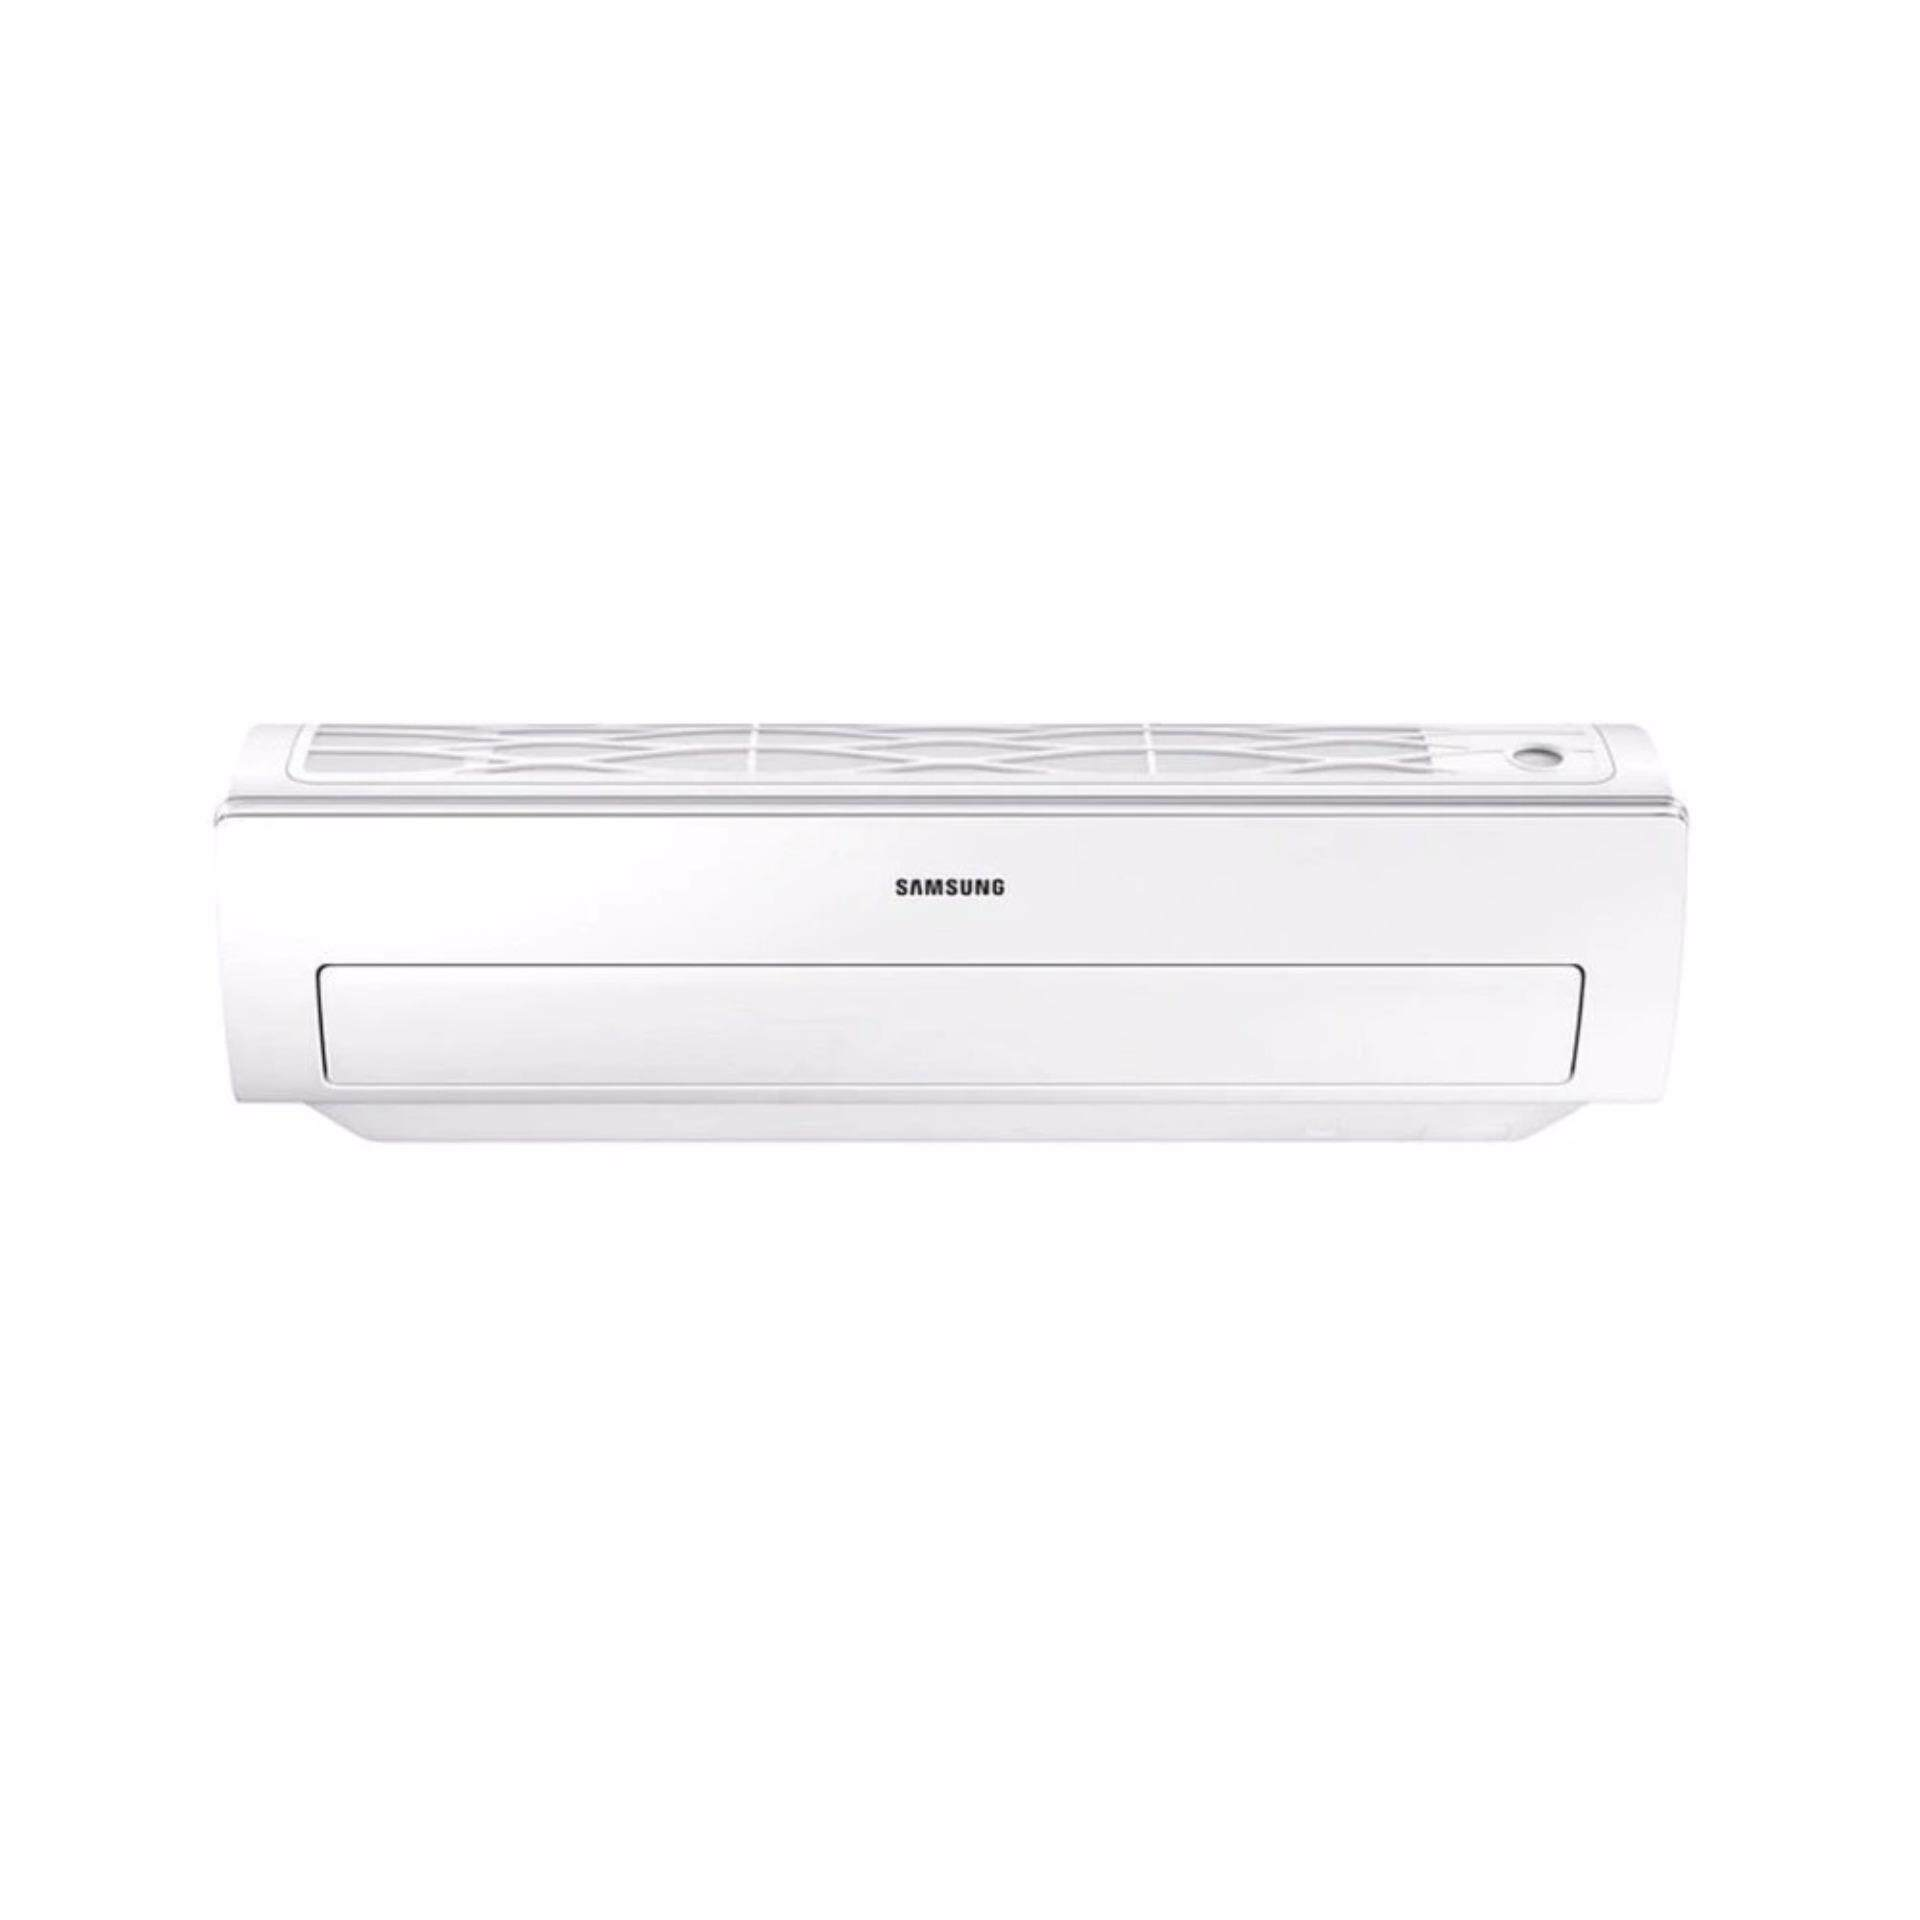 SAMSUNG 1.5HP AIR CONDITIONER AR12JRFSWWKNME